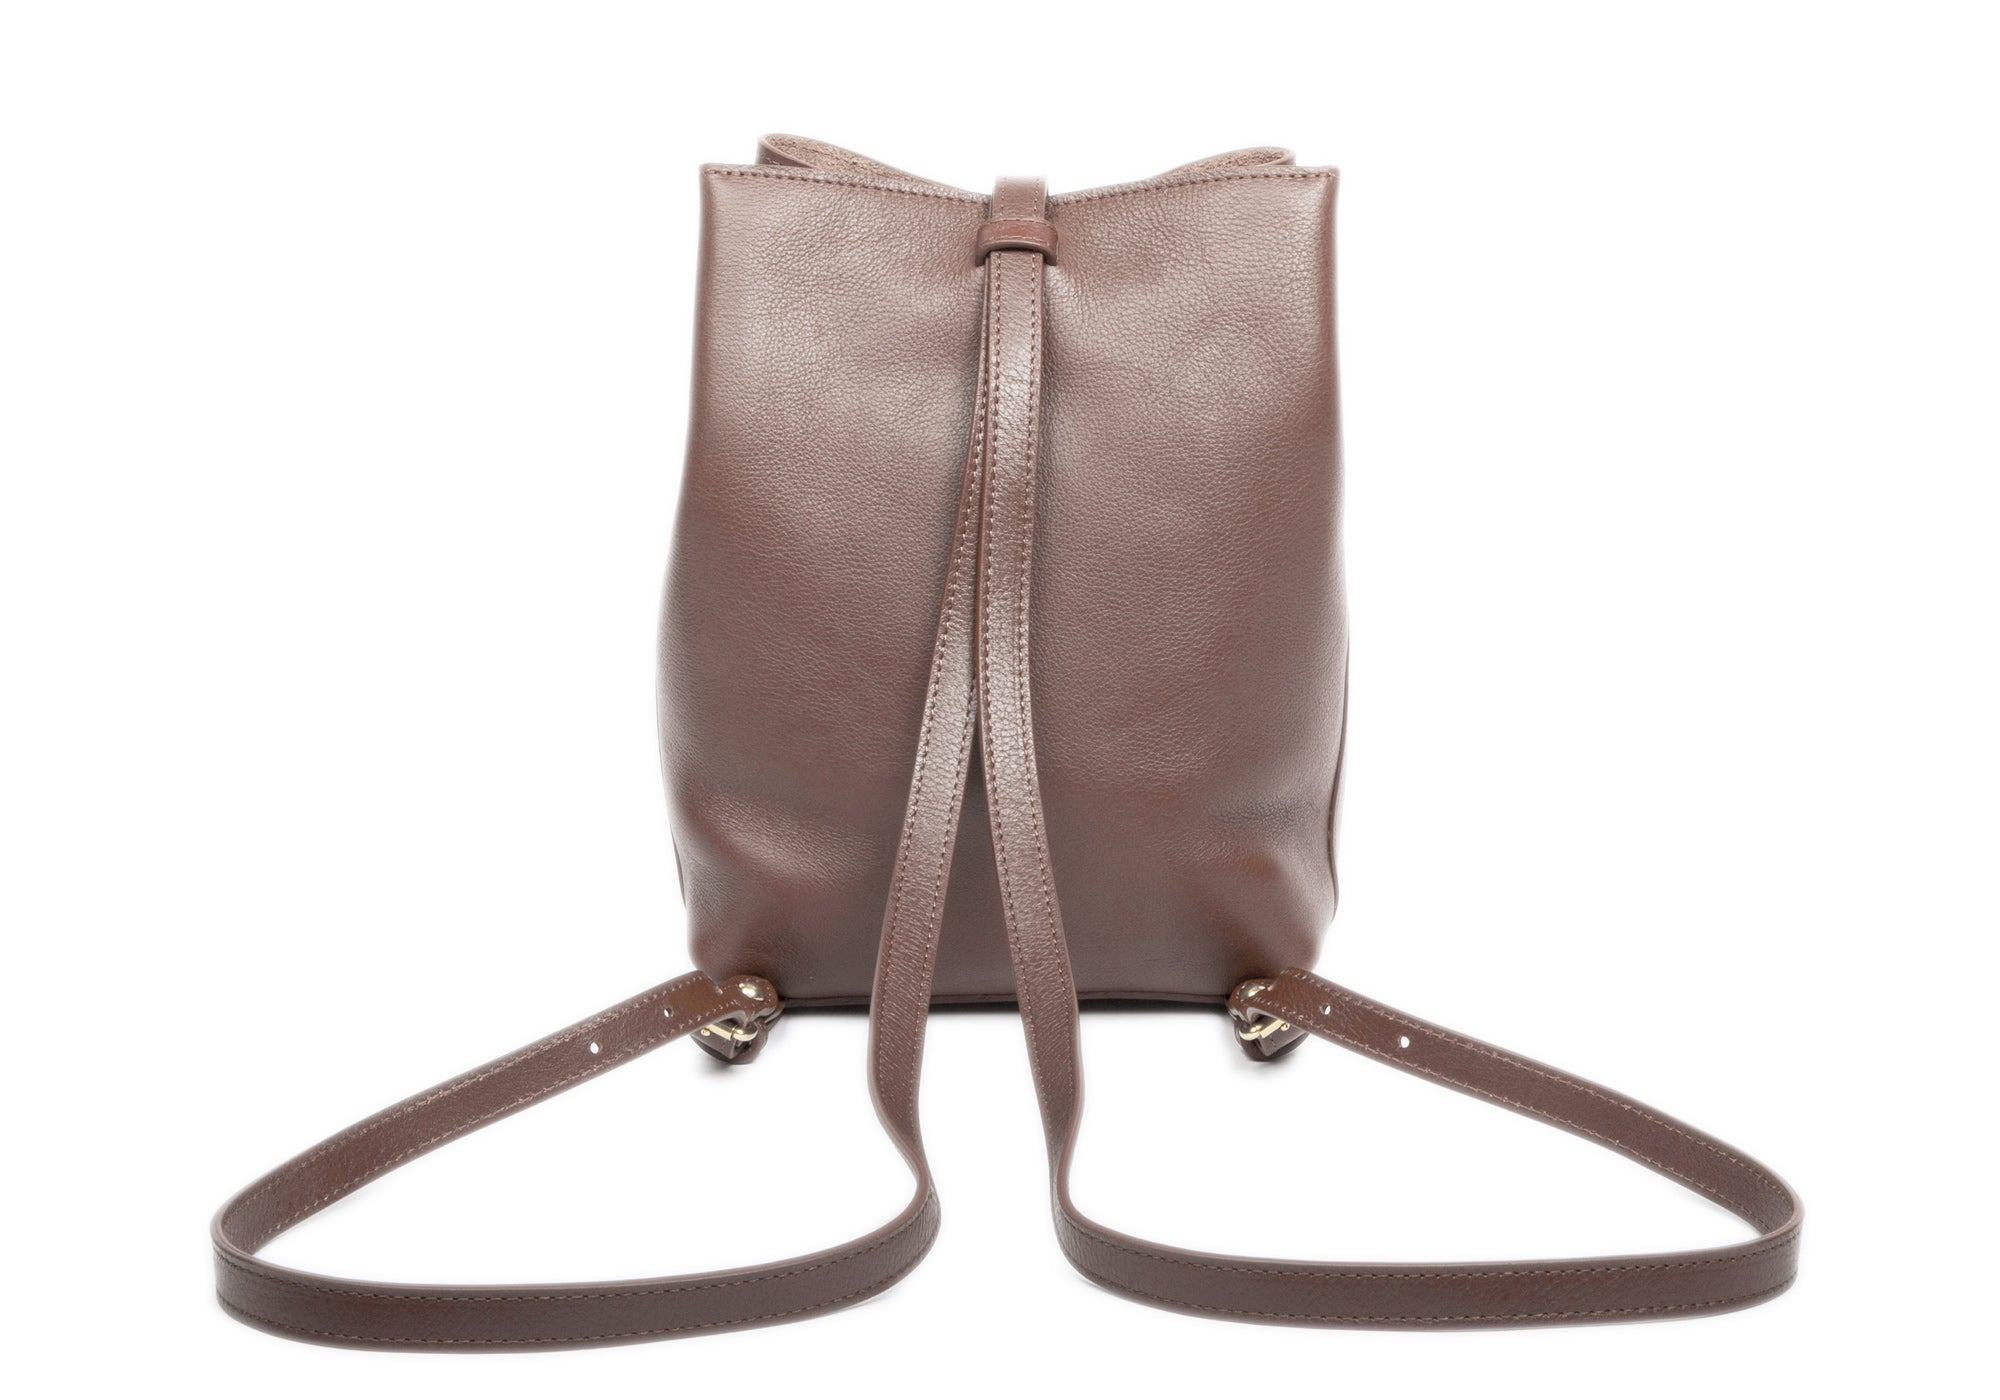 The Mini Sling Backpack Clay